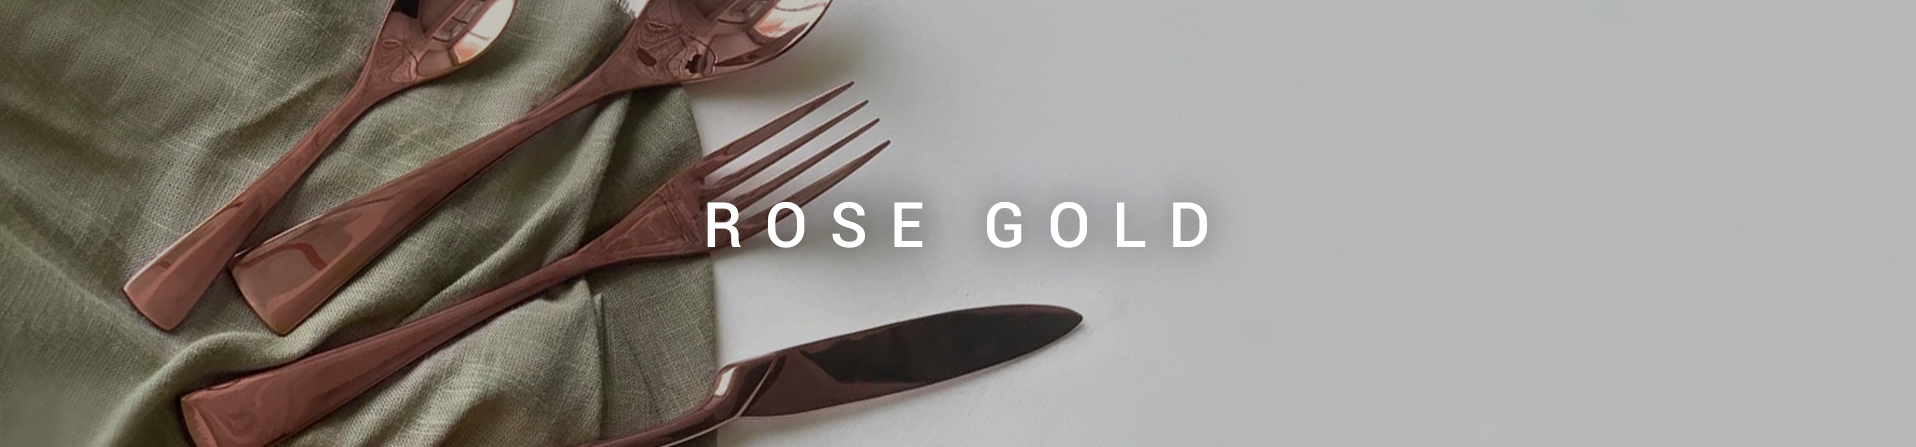 - Rosegold Theme Gifts -